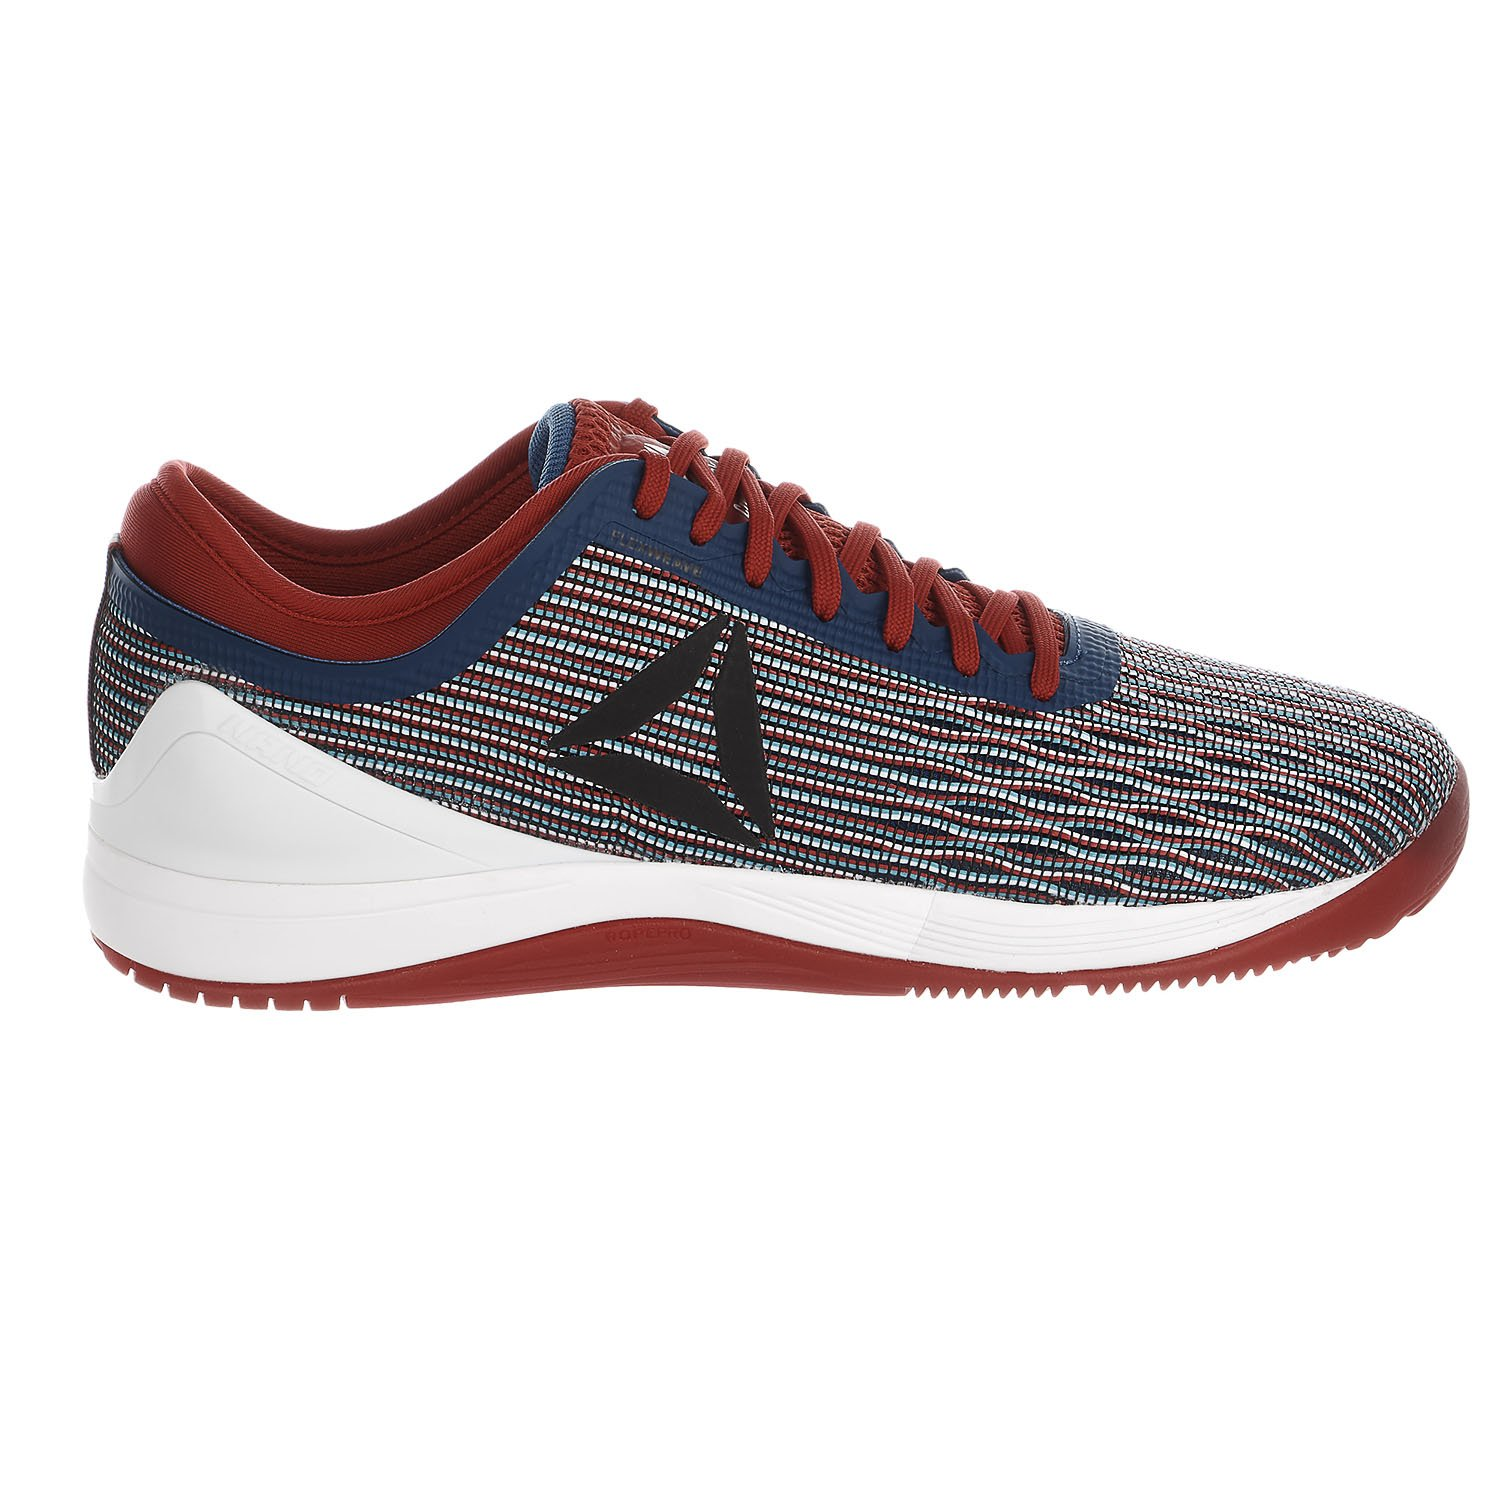 Red-Dark Royal-White Reebok Crossfit Nano 8.0 shoes Men's Crossfit